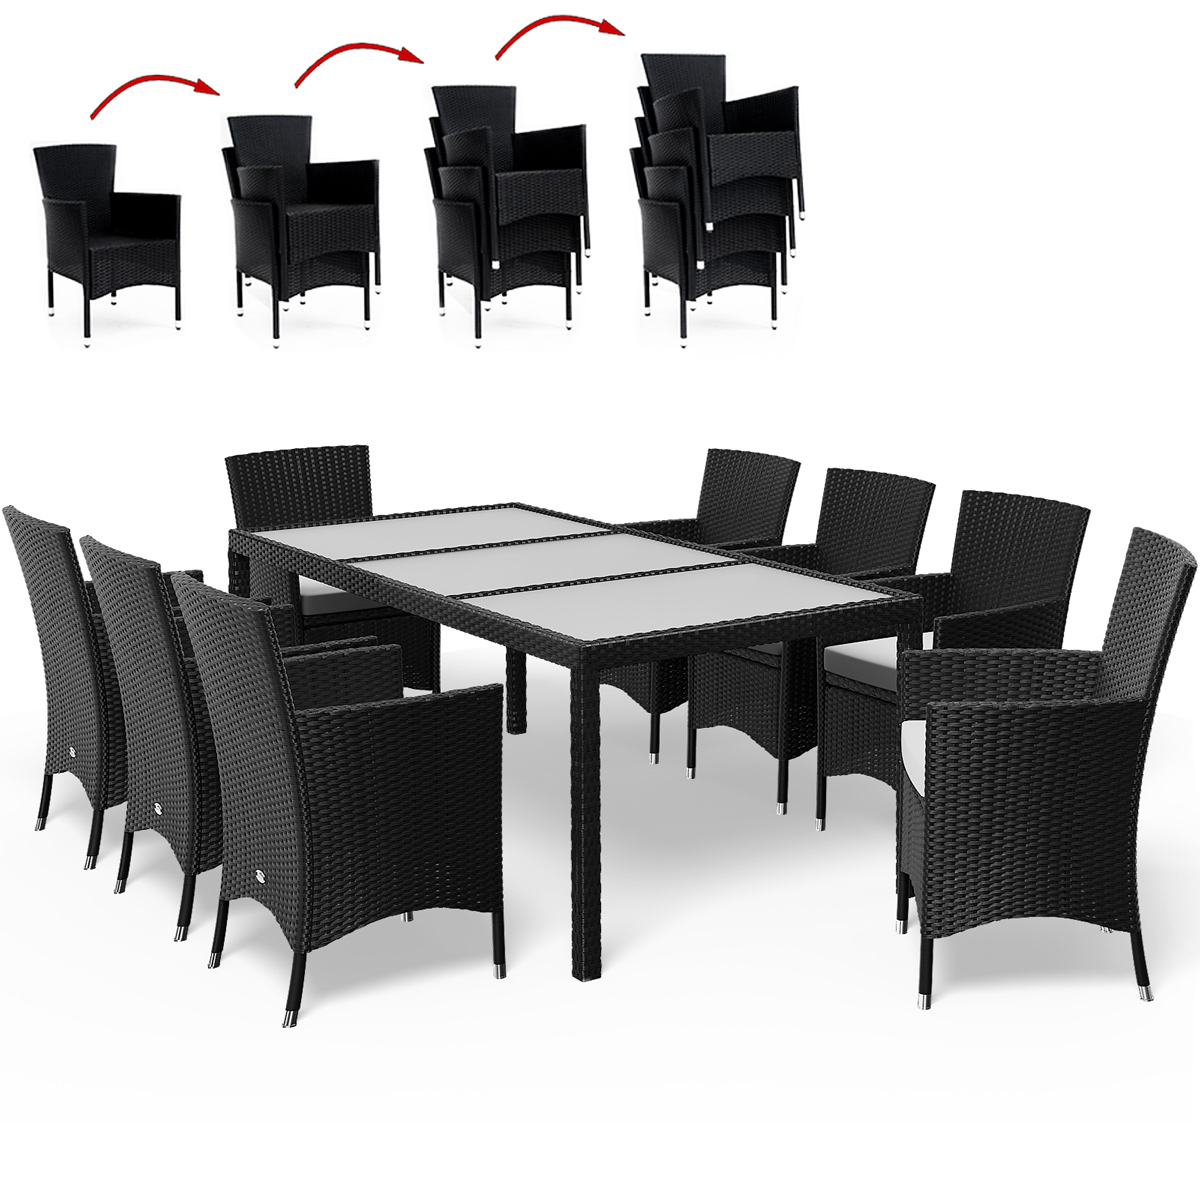 salon de jardin 17 pcs ensemble table 8 chaises alu polyrotin verre ext rieur 4250525332155. Black Bedroom Furniture Sets. Home Design Ideas